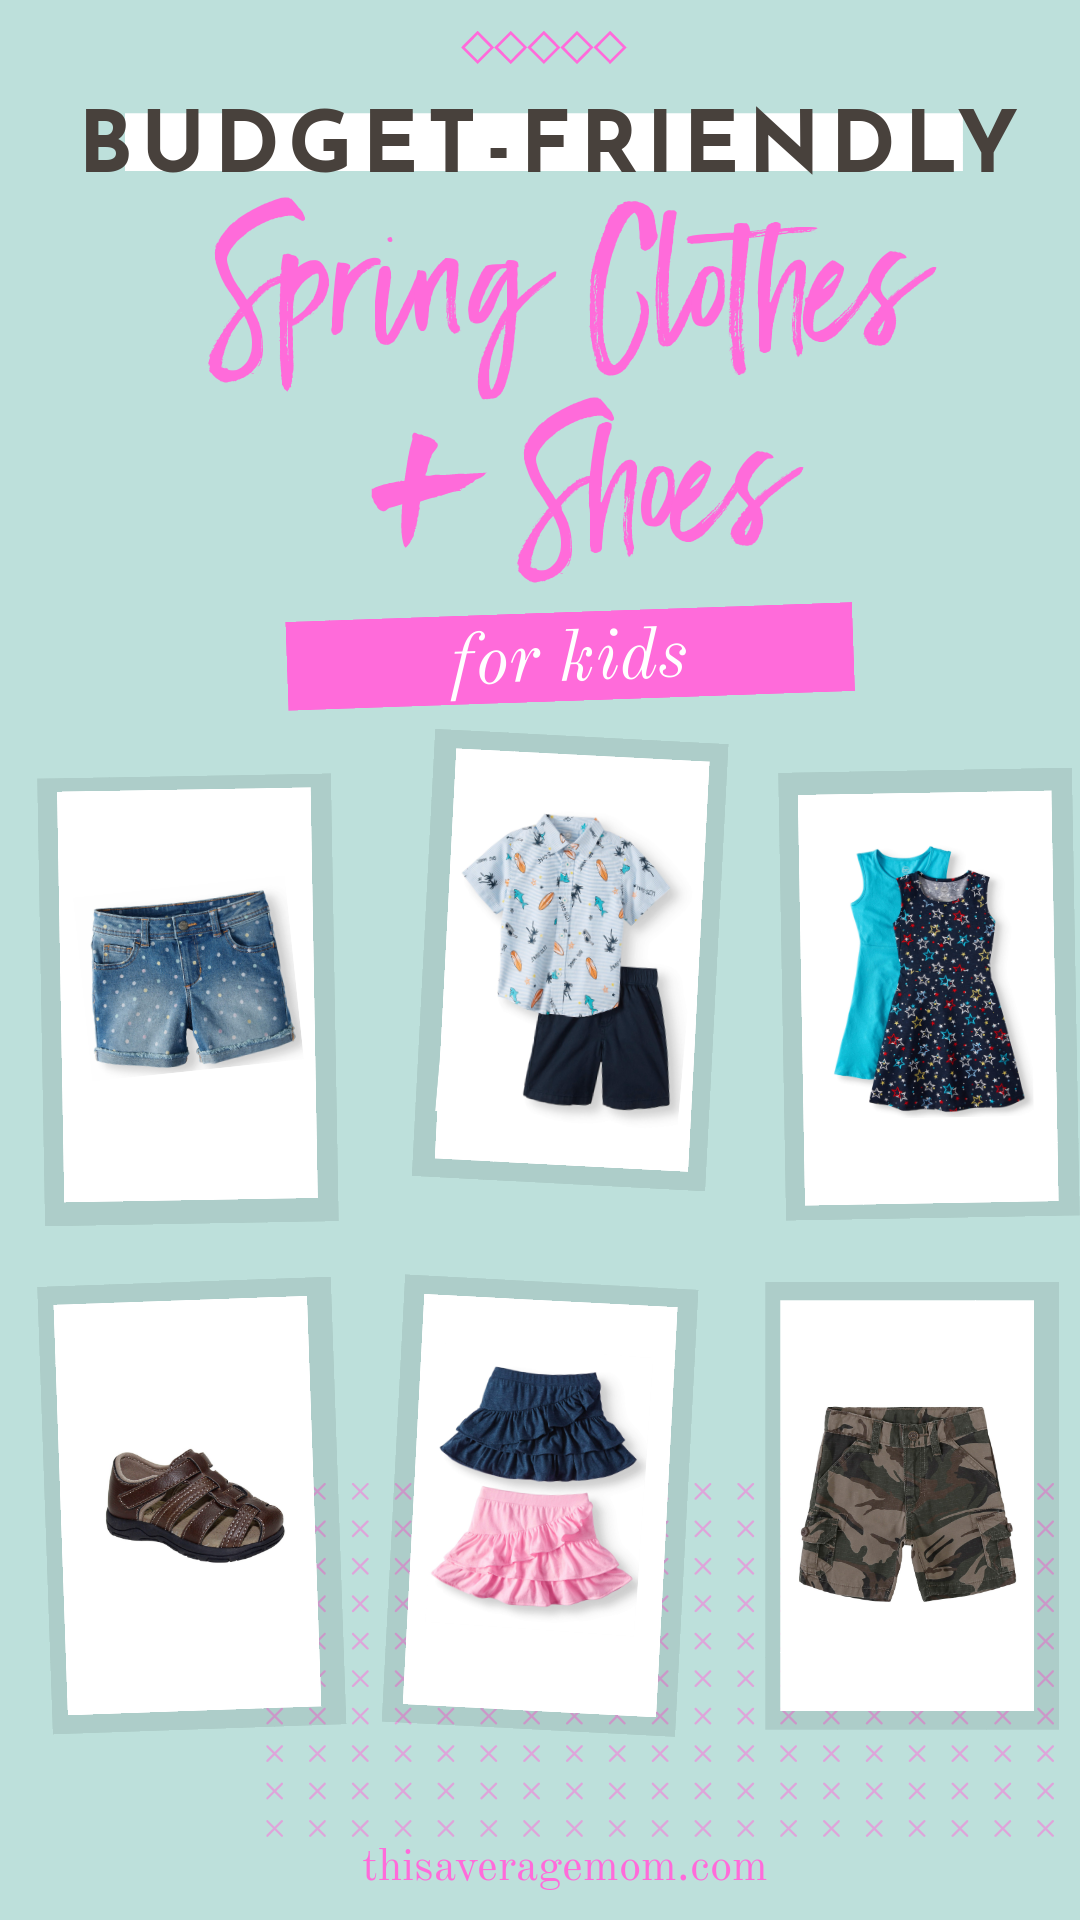 Why spend tons of money on kids clothes when you don't have to? I found tons of cute clothes for toddlers and kids at Walmart! For affordable, fun spring clothes and shoes for kids, I've got you covered! #walmartfinds #budgetfriendly #kidsclothes